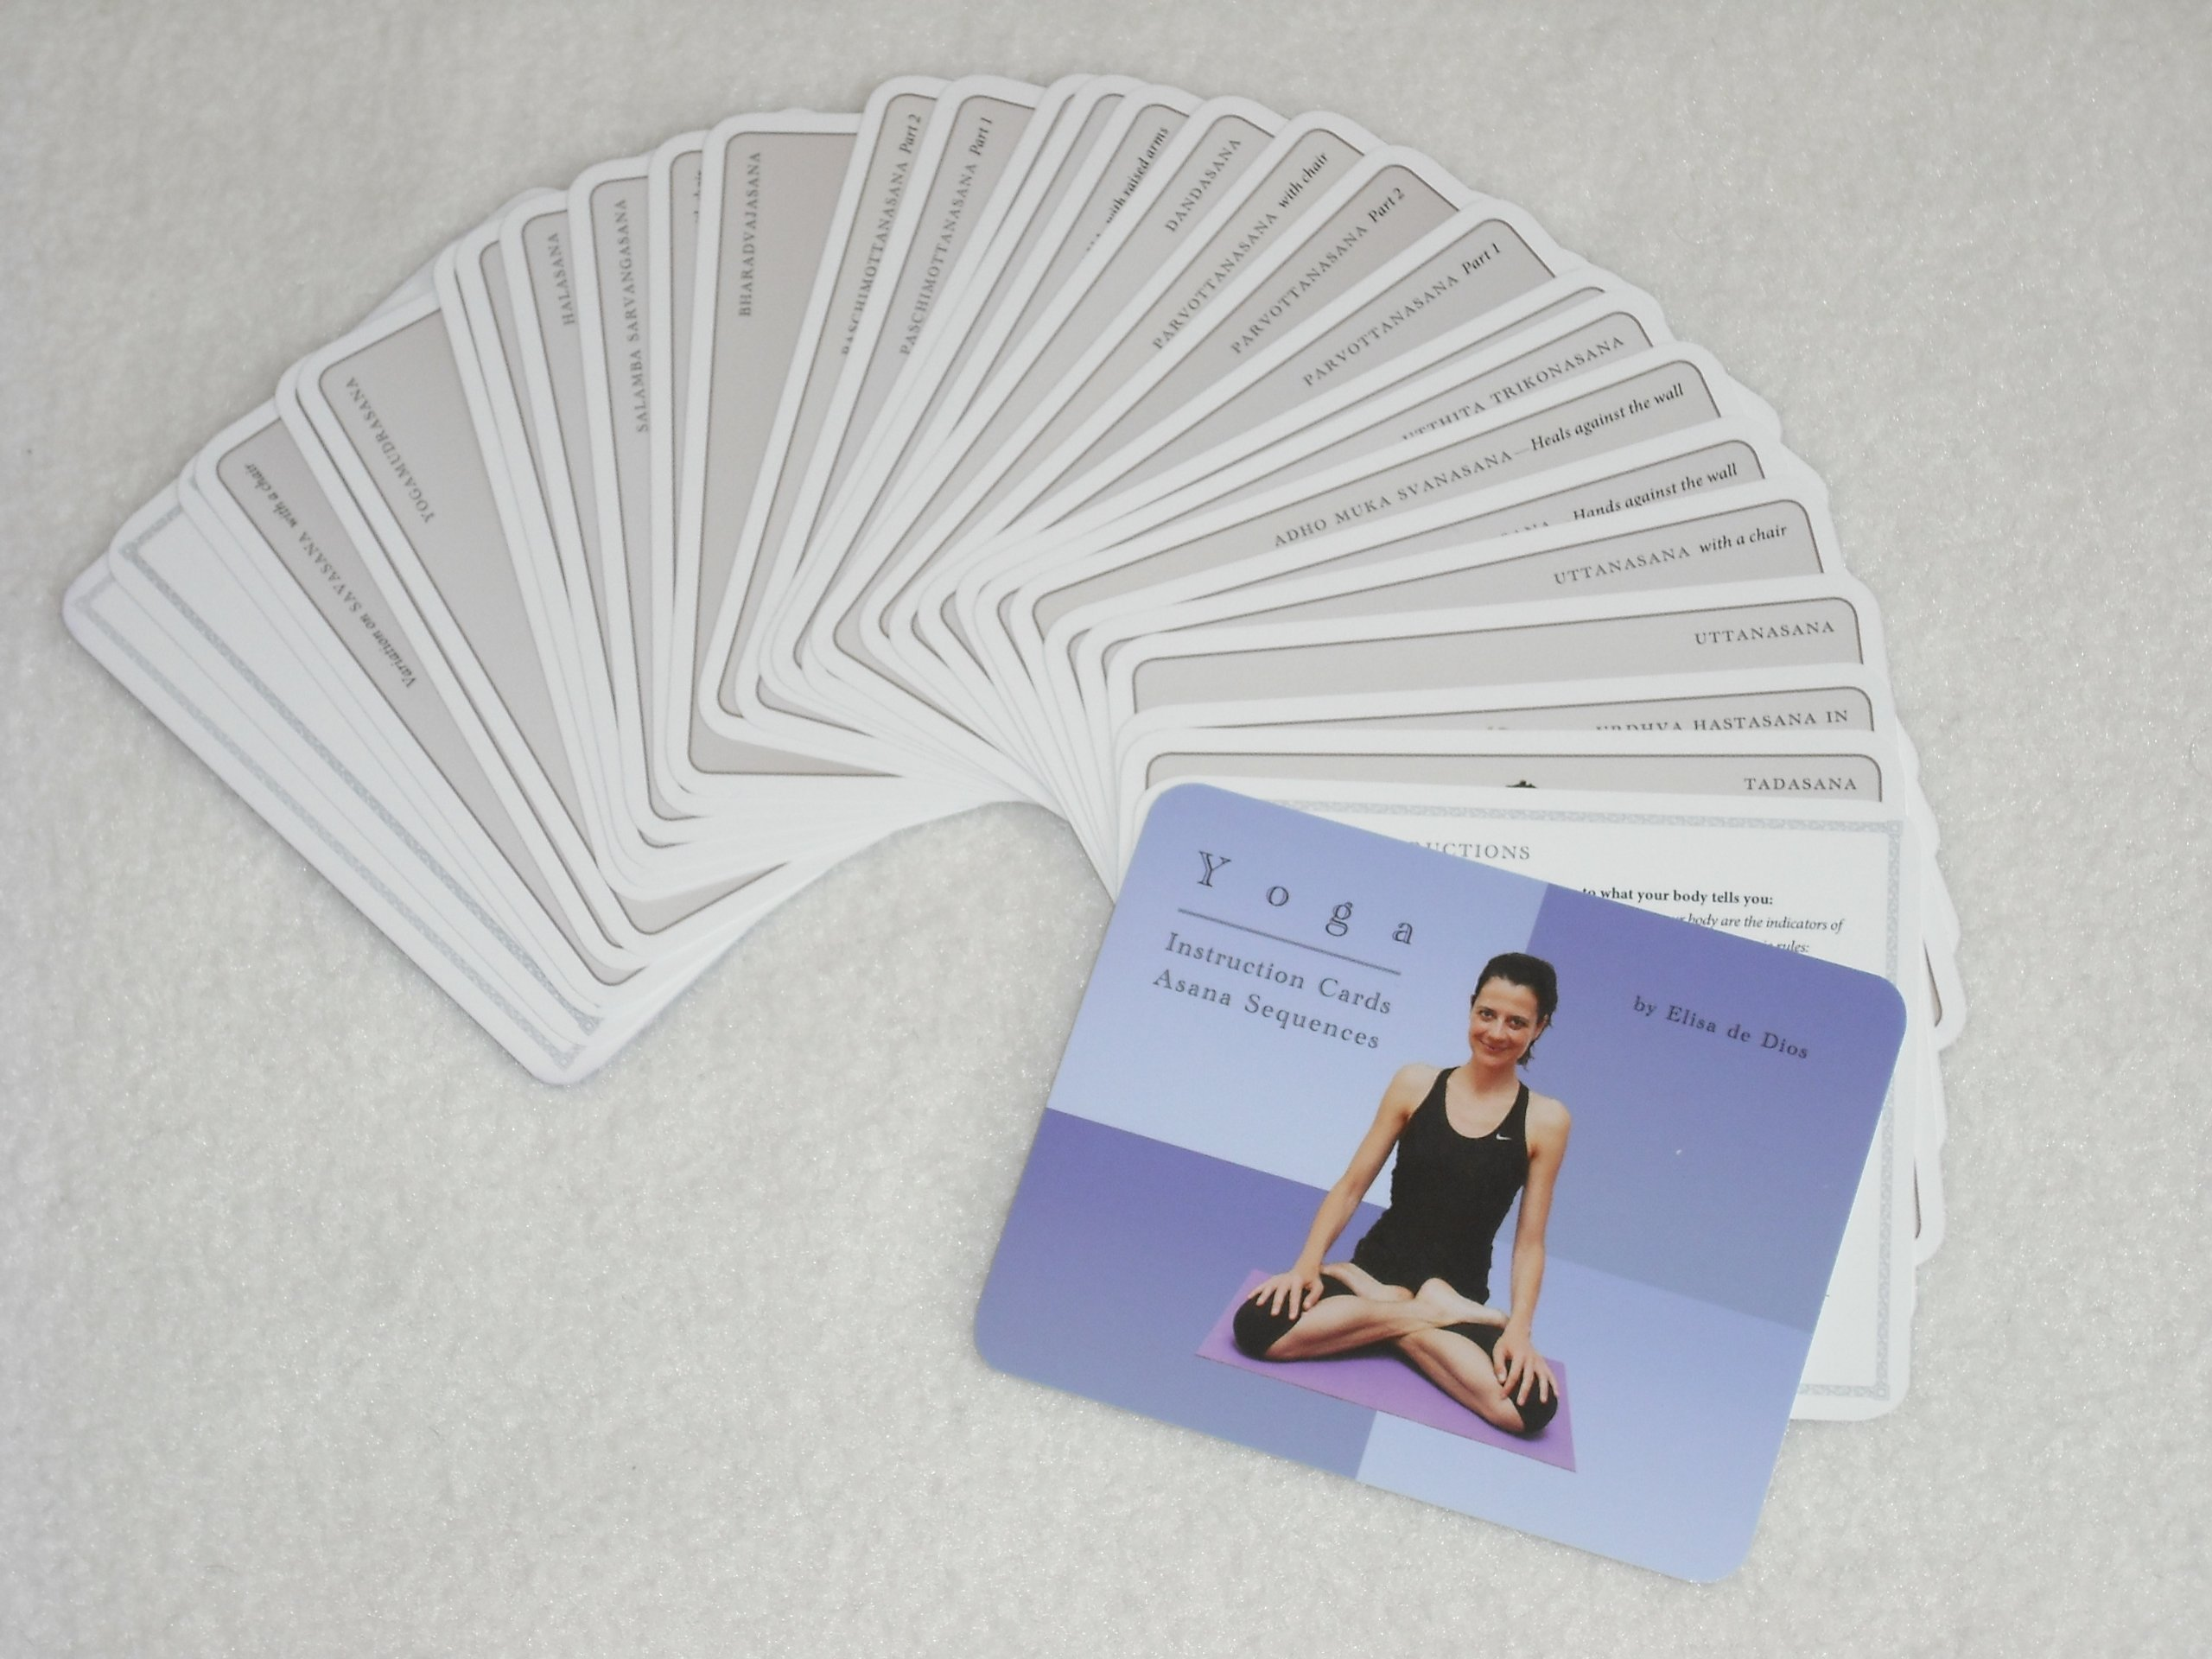 Amazon.com: New Yoga Flash Cards - Asana Instruction ...